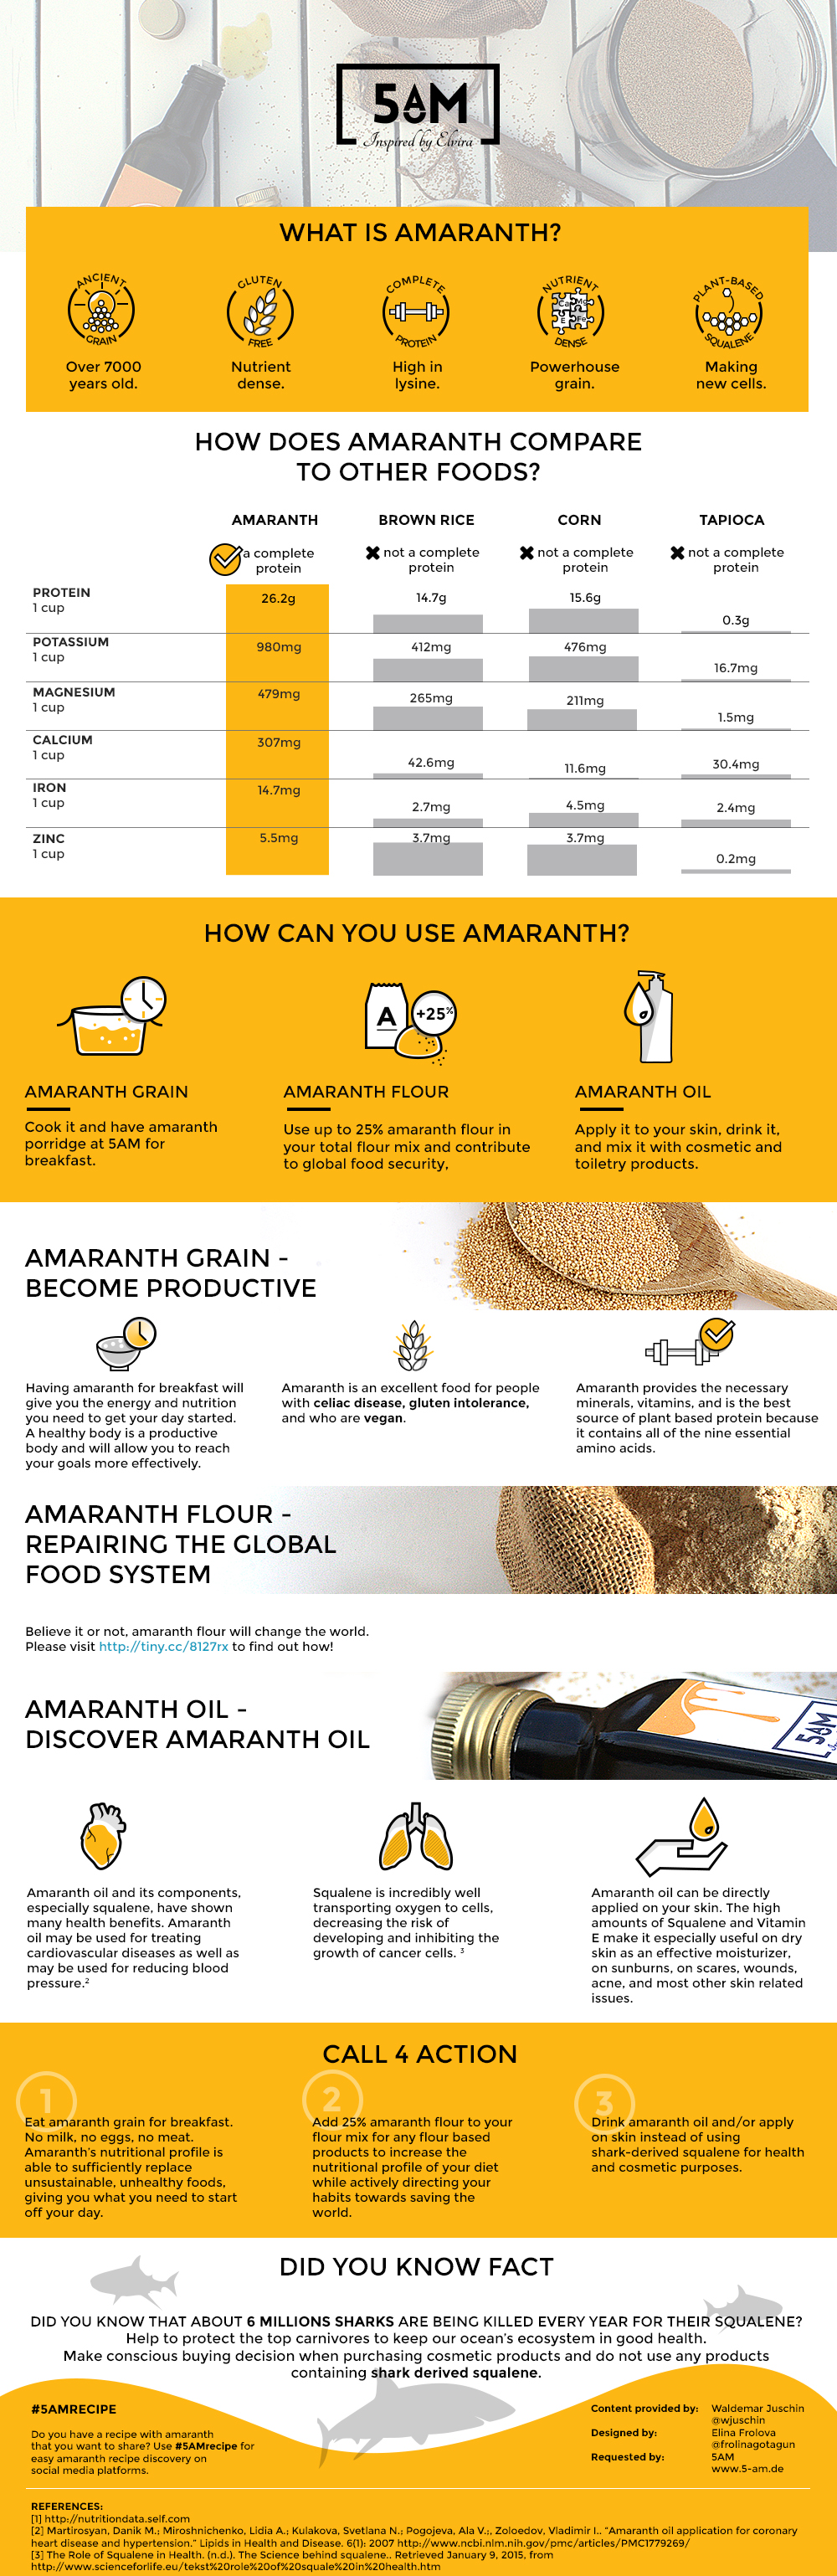 5AM amaranth infographic